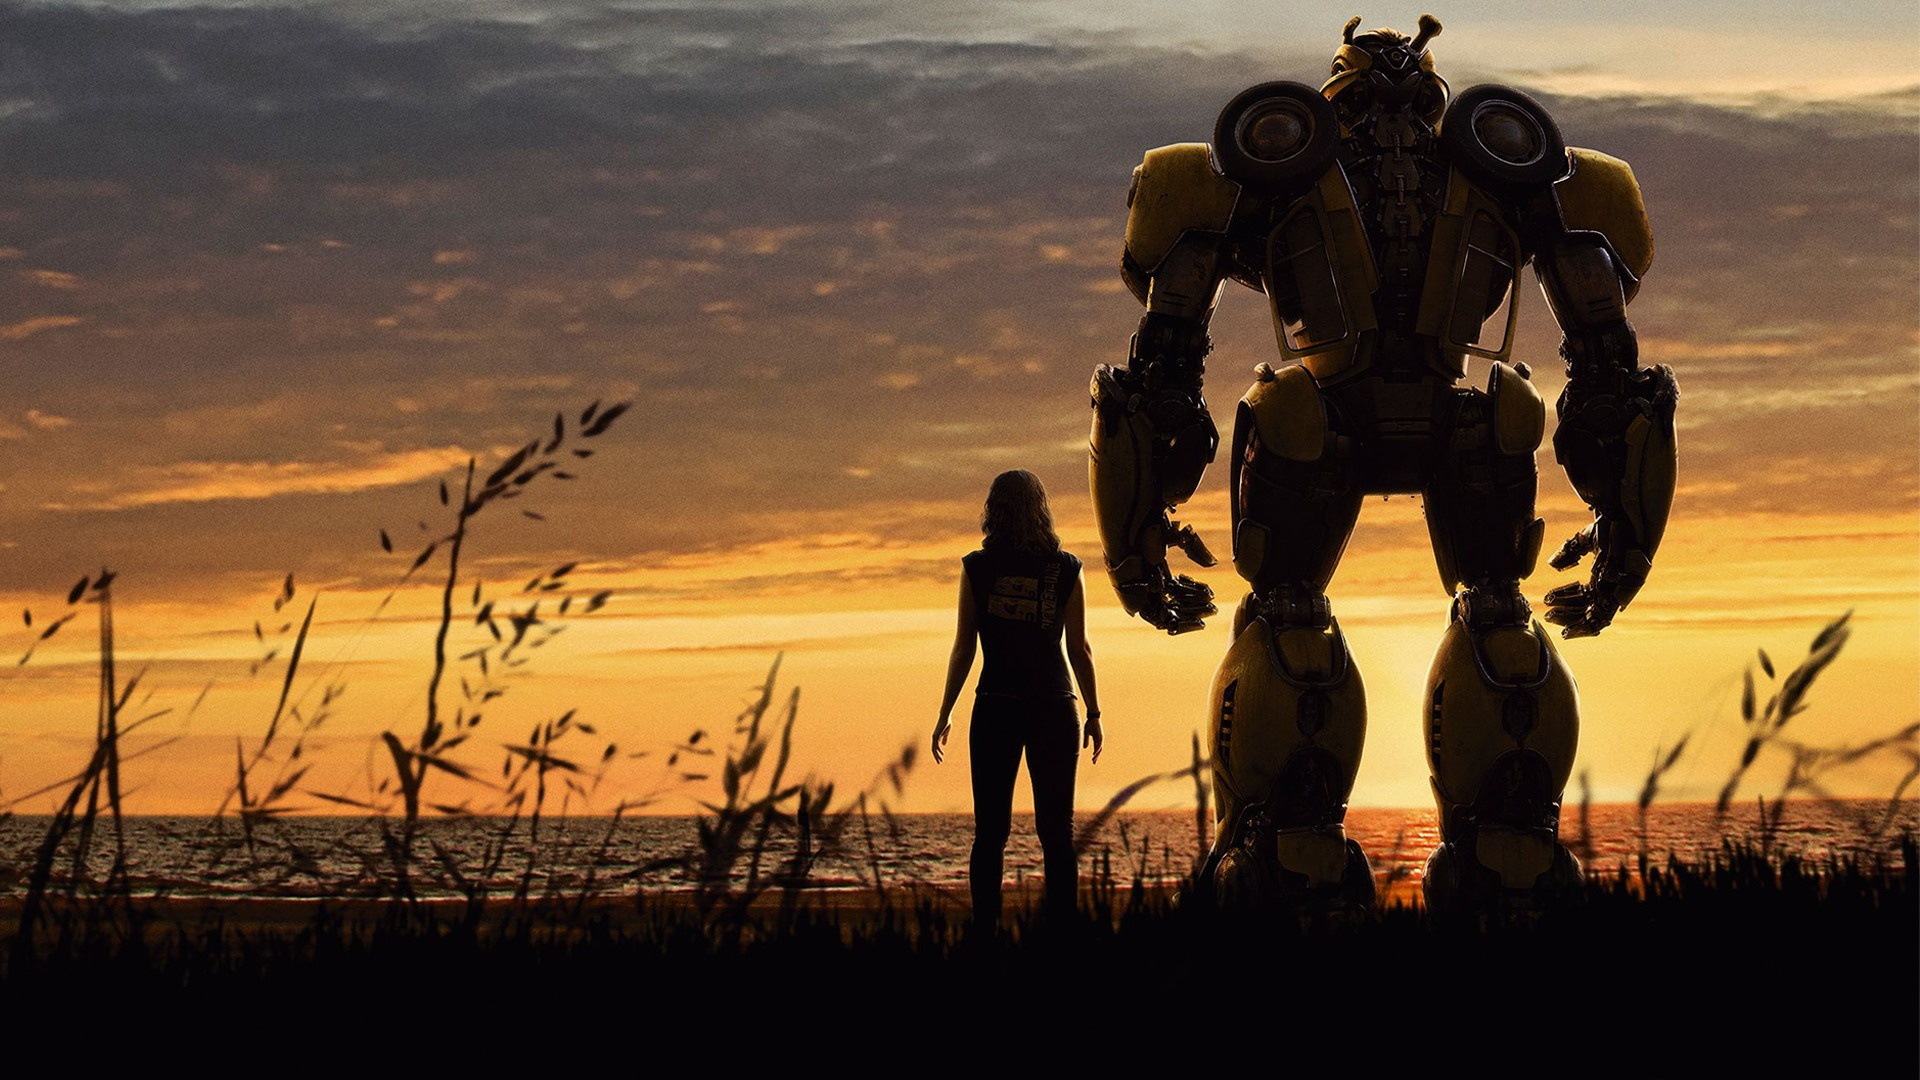 Bumblebee 2: All We Know About The Transformers Sequel